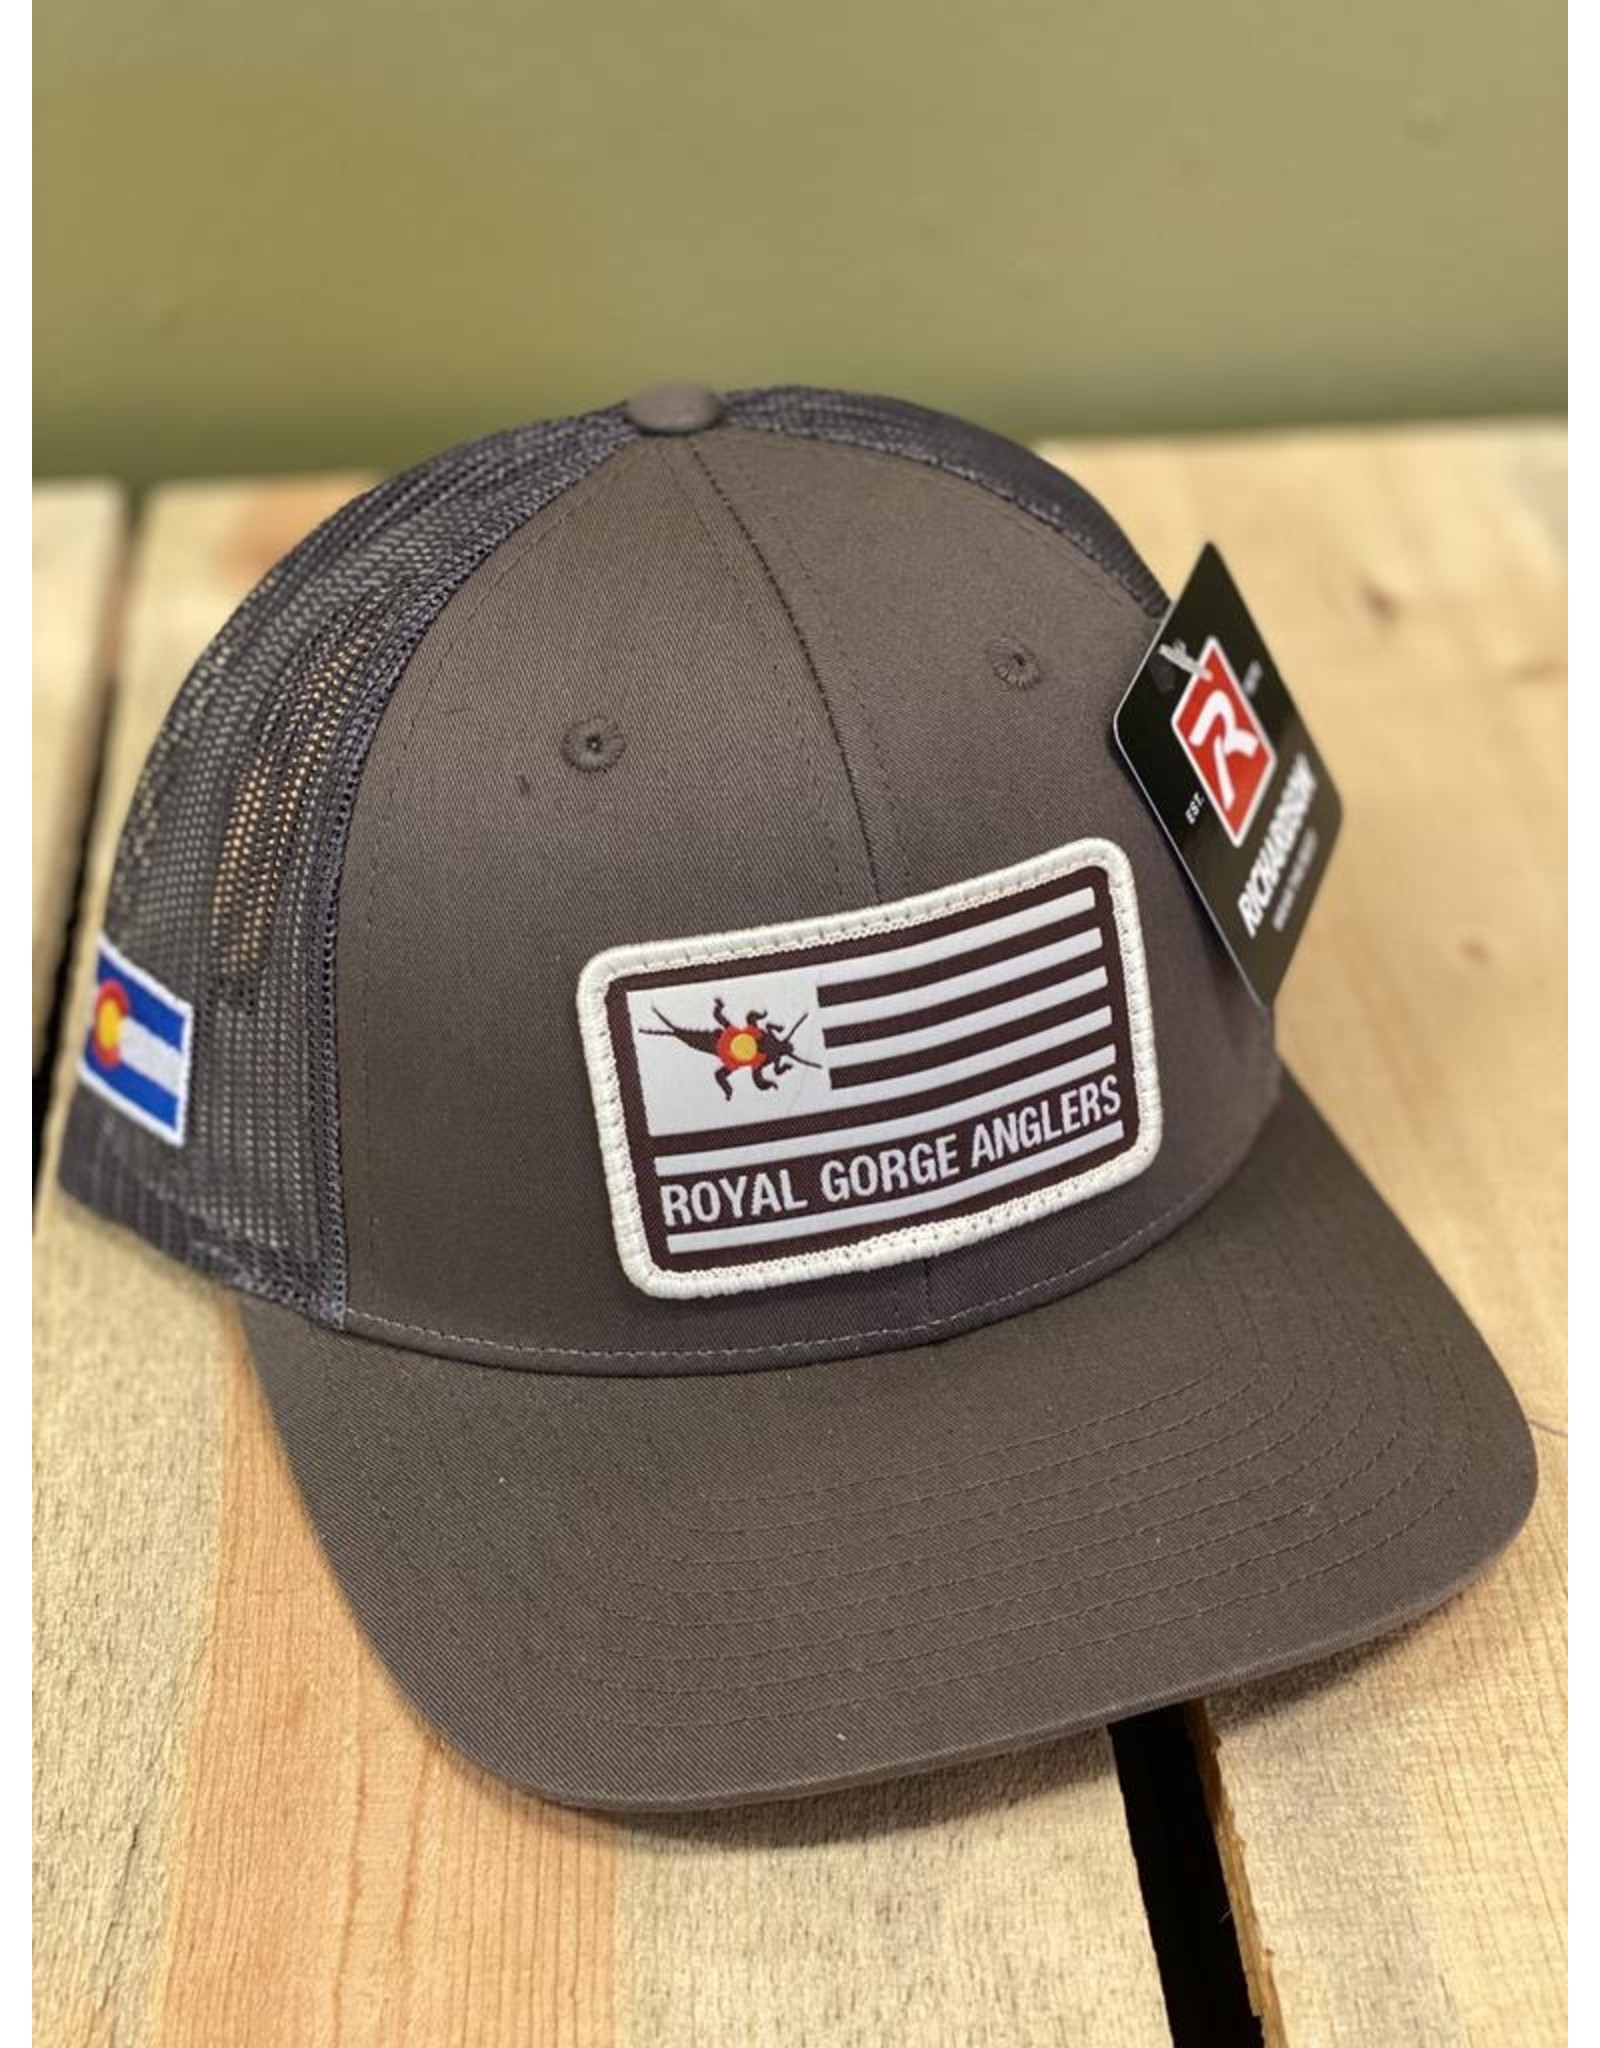 Feast your eyes on the coolest Flag patch Trucker hat to ever hit the water!